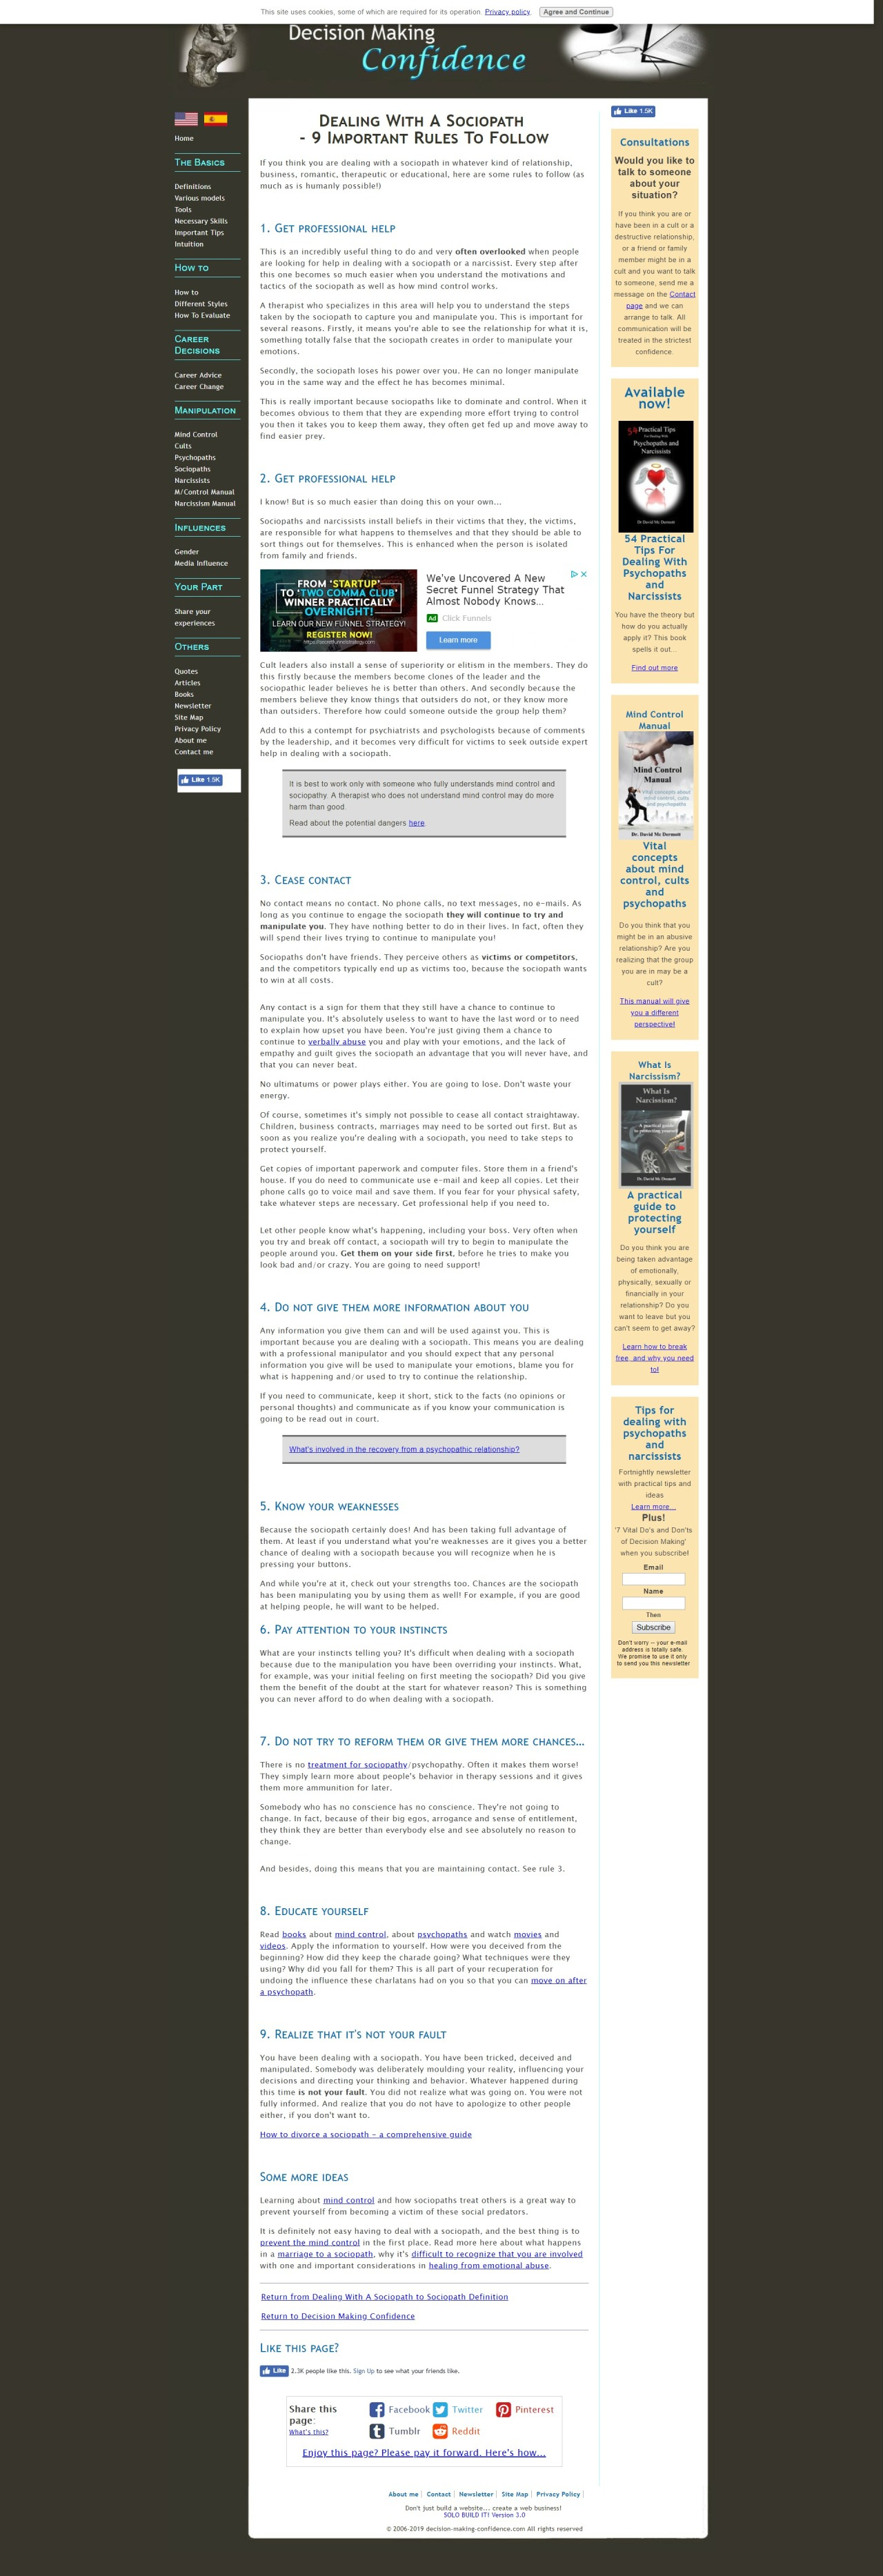 screencapture-decision-making-confidence-dealing-with-a-sociopath-html-2019-03-20-04_06_20